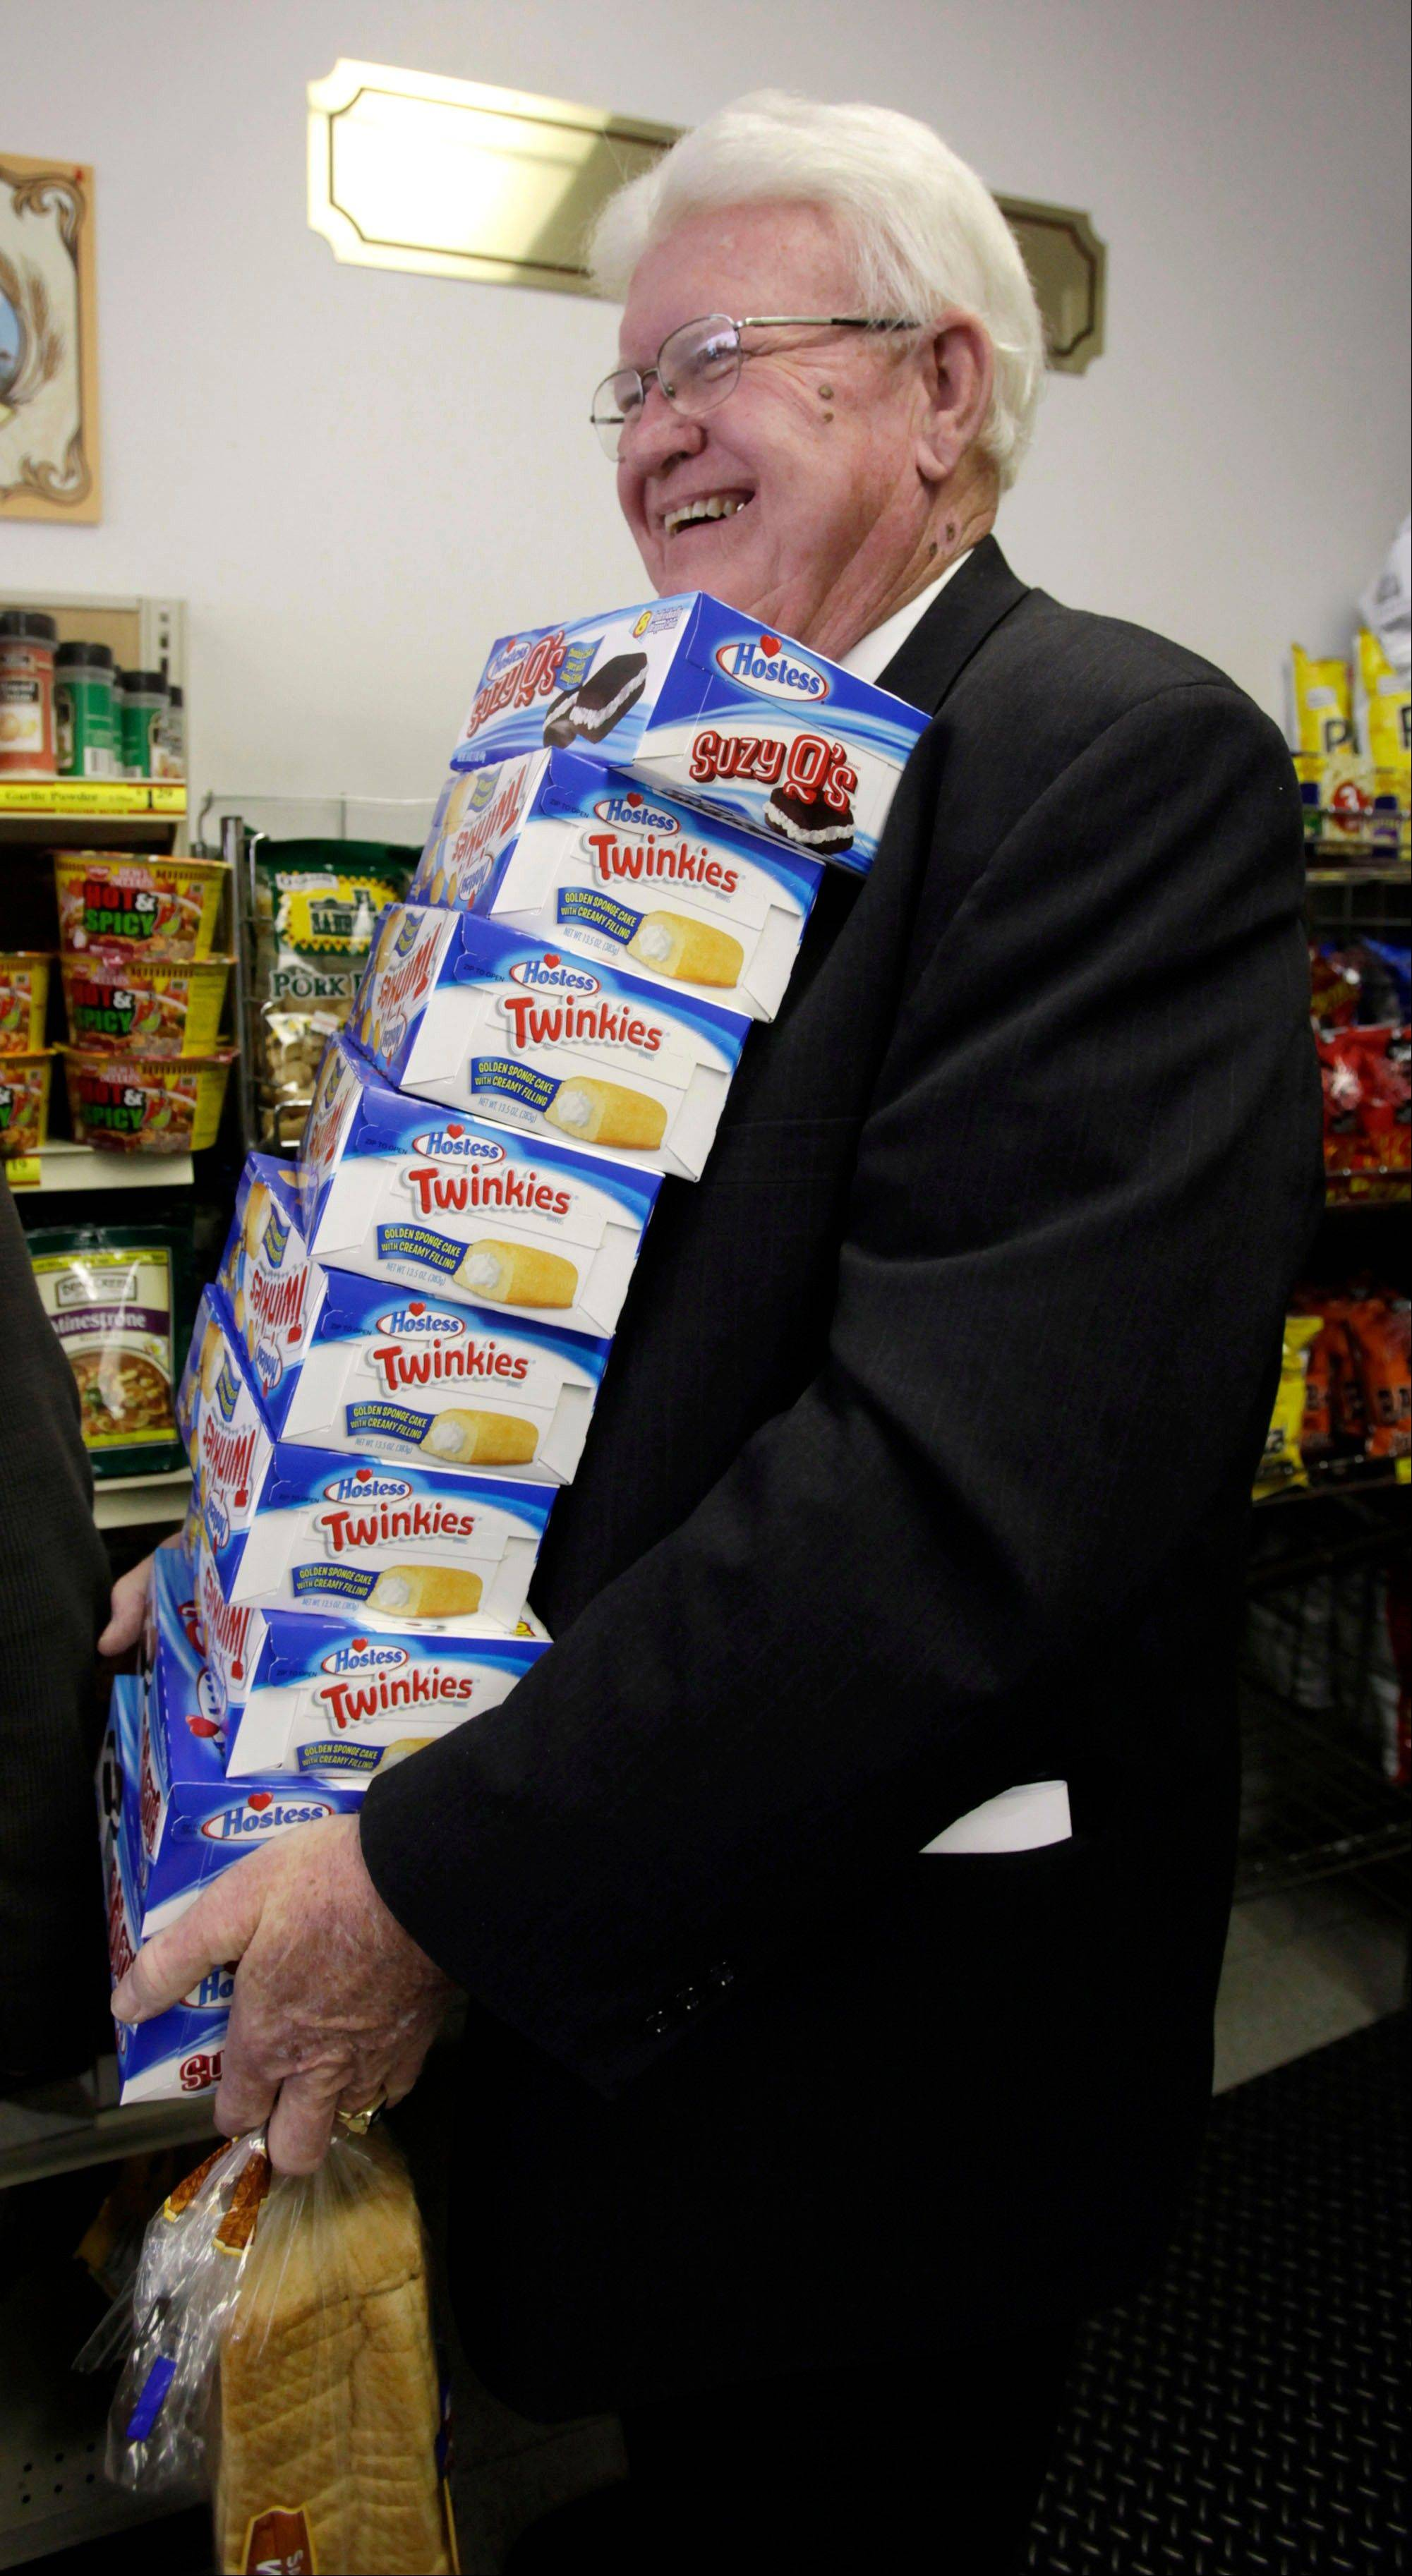 Curtis Smout stands in line with a stack of Twinkies at the Hostess Thrift Shop in Ogden, Utah on Friday.